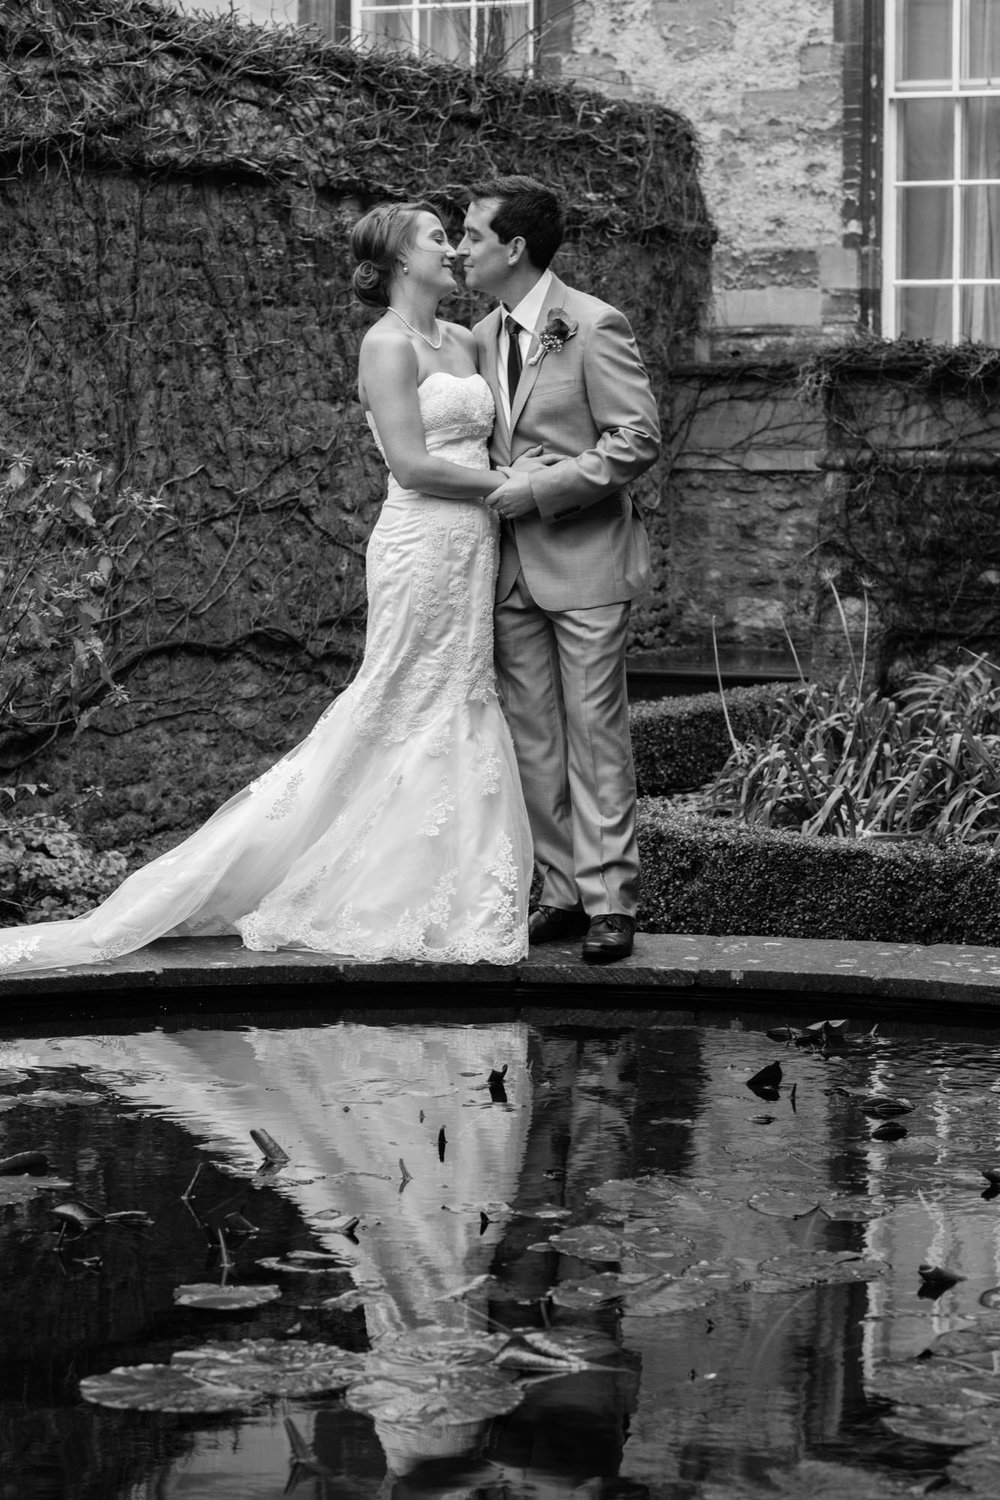 weddings-couples-love-photographer-oxford-london-jonathan-self-photography-61.jpg